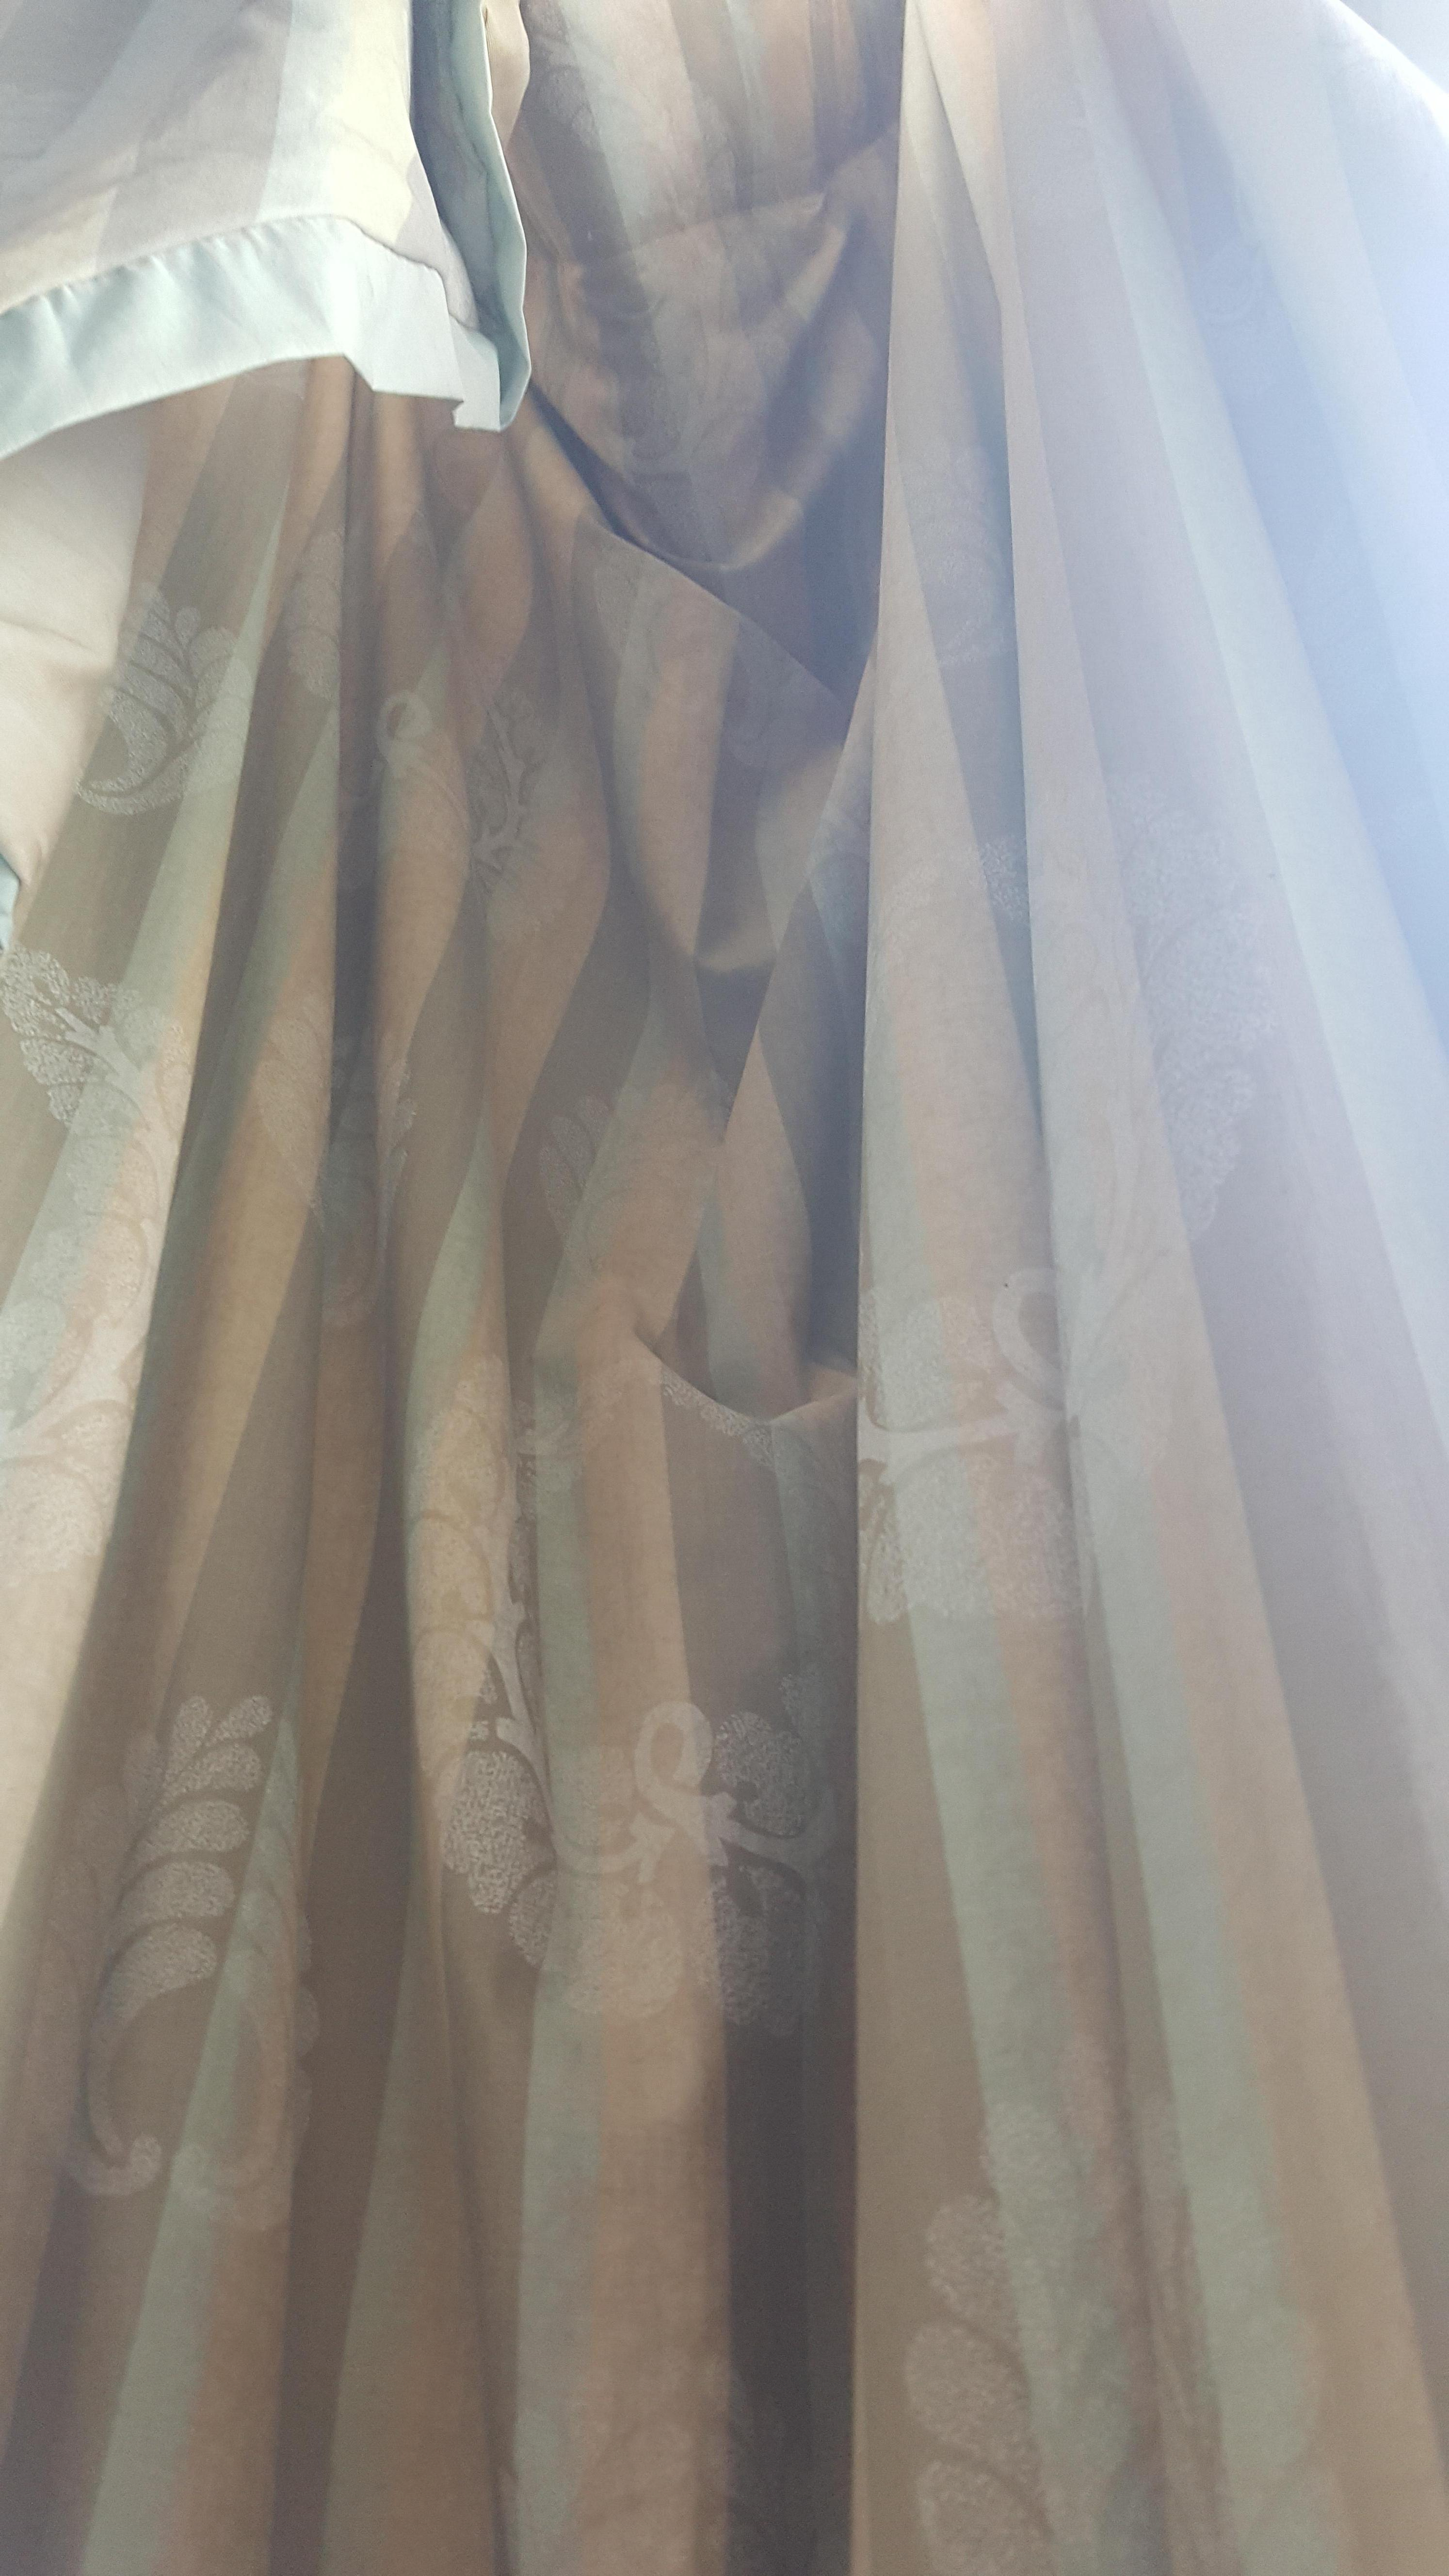 Curtains not hung properly